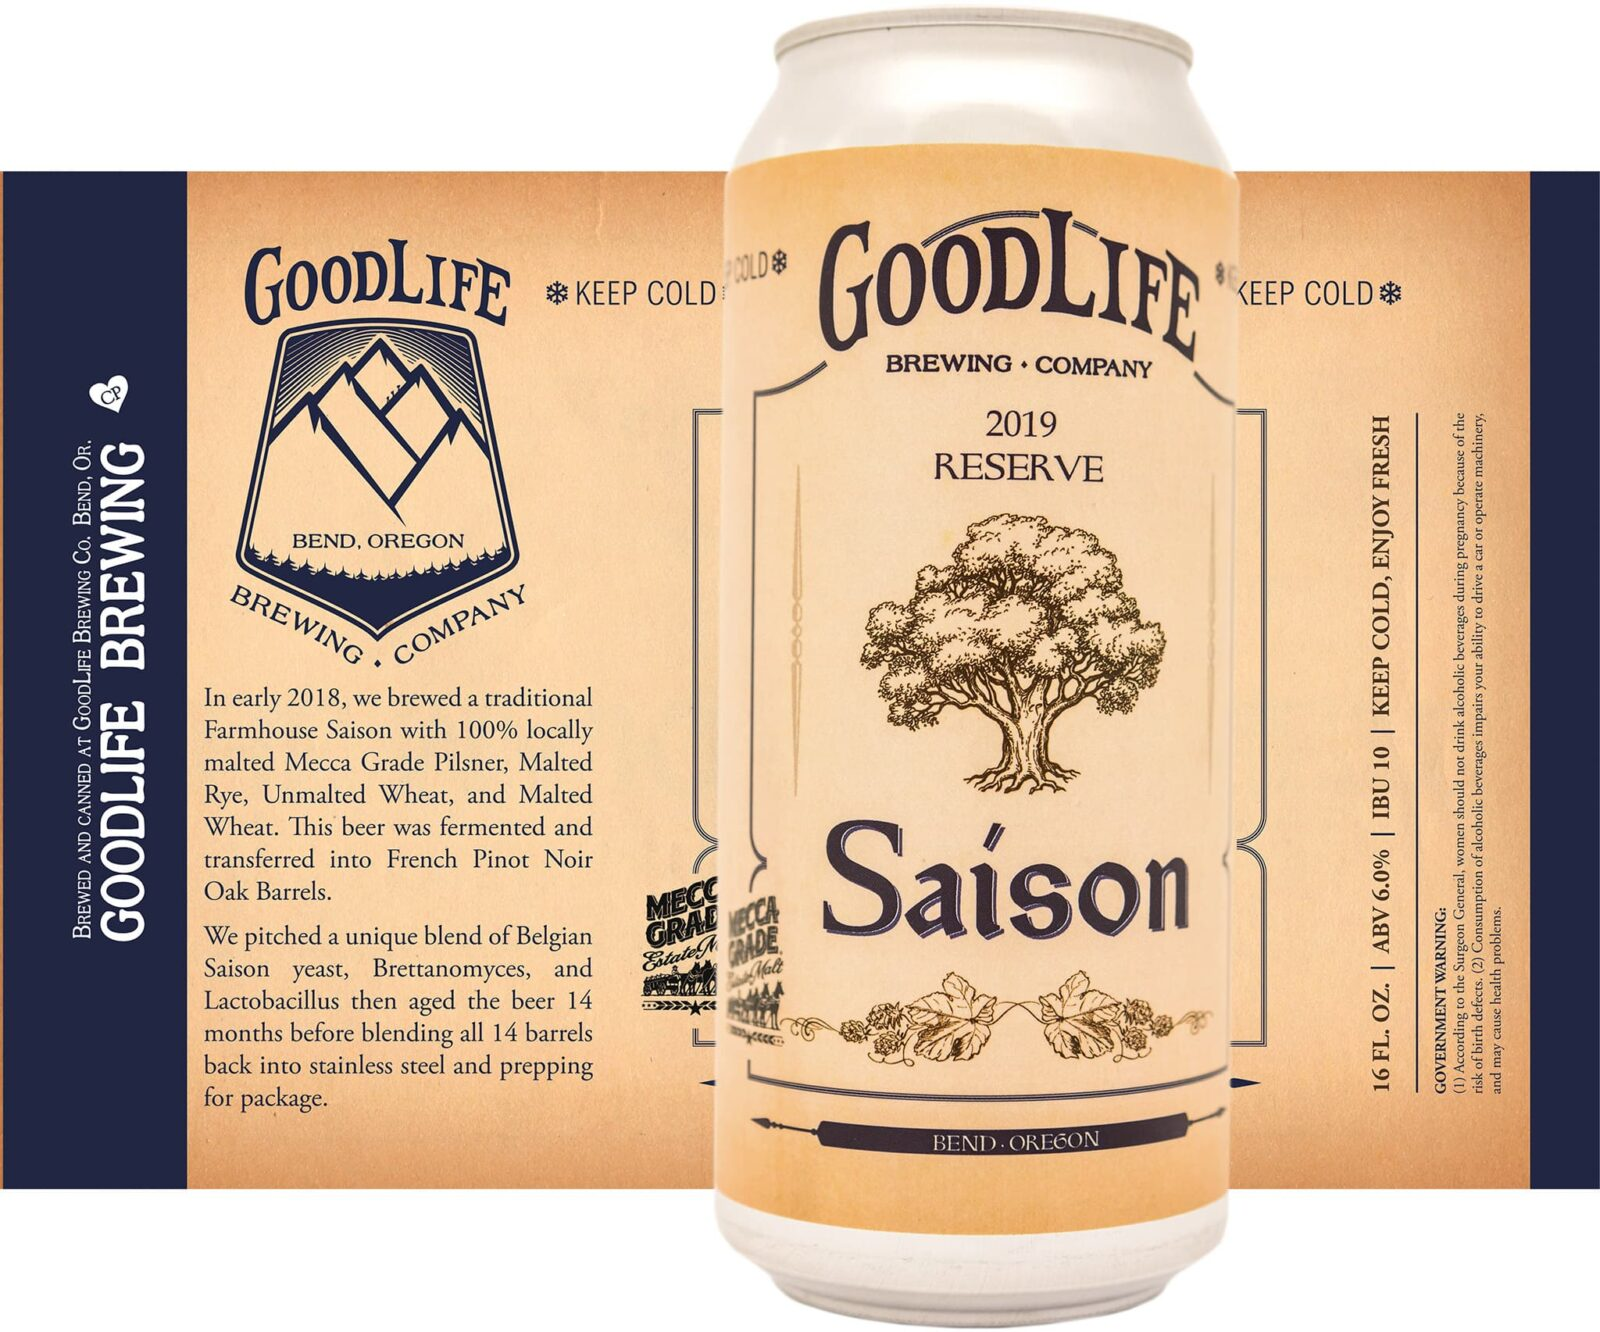 crowerks designed the artwork for GoodLife 2019 Reserve Saison